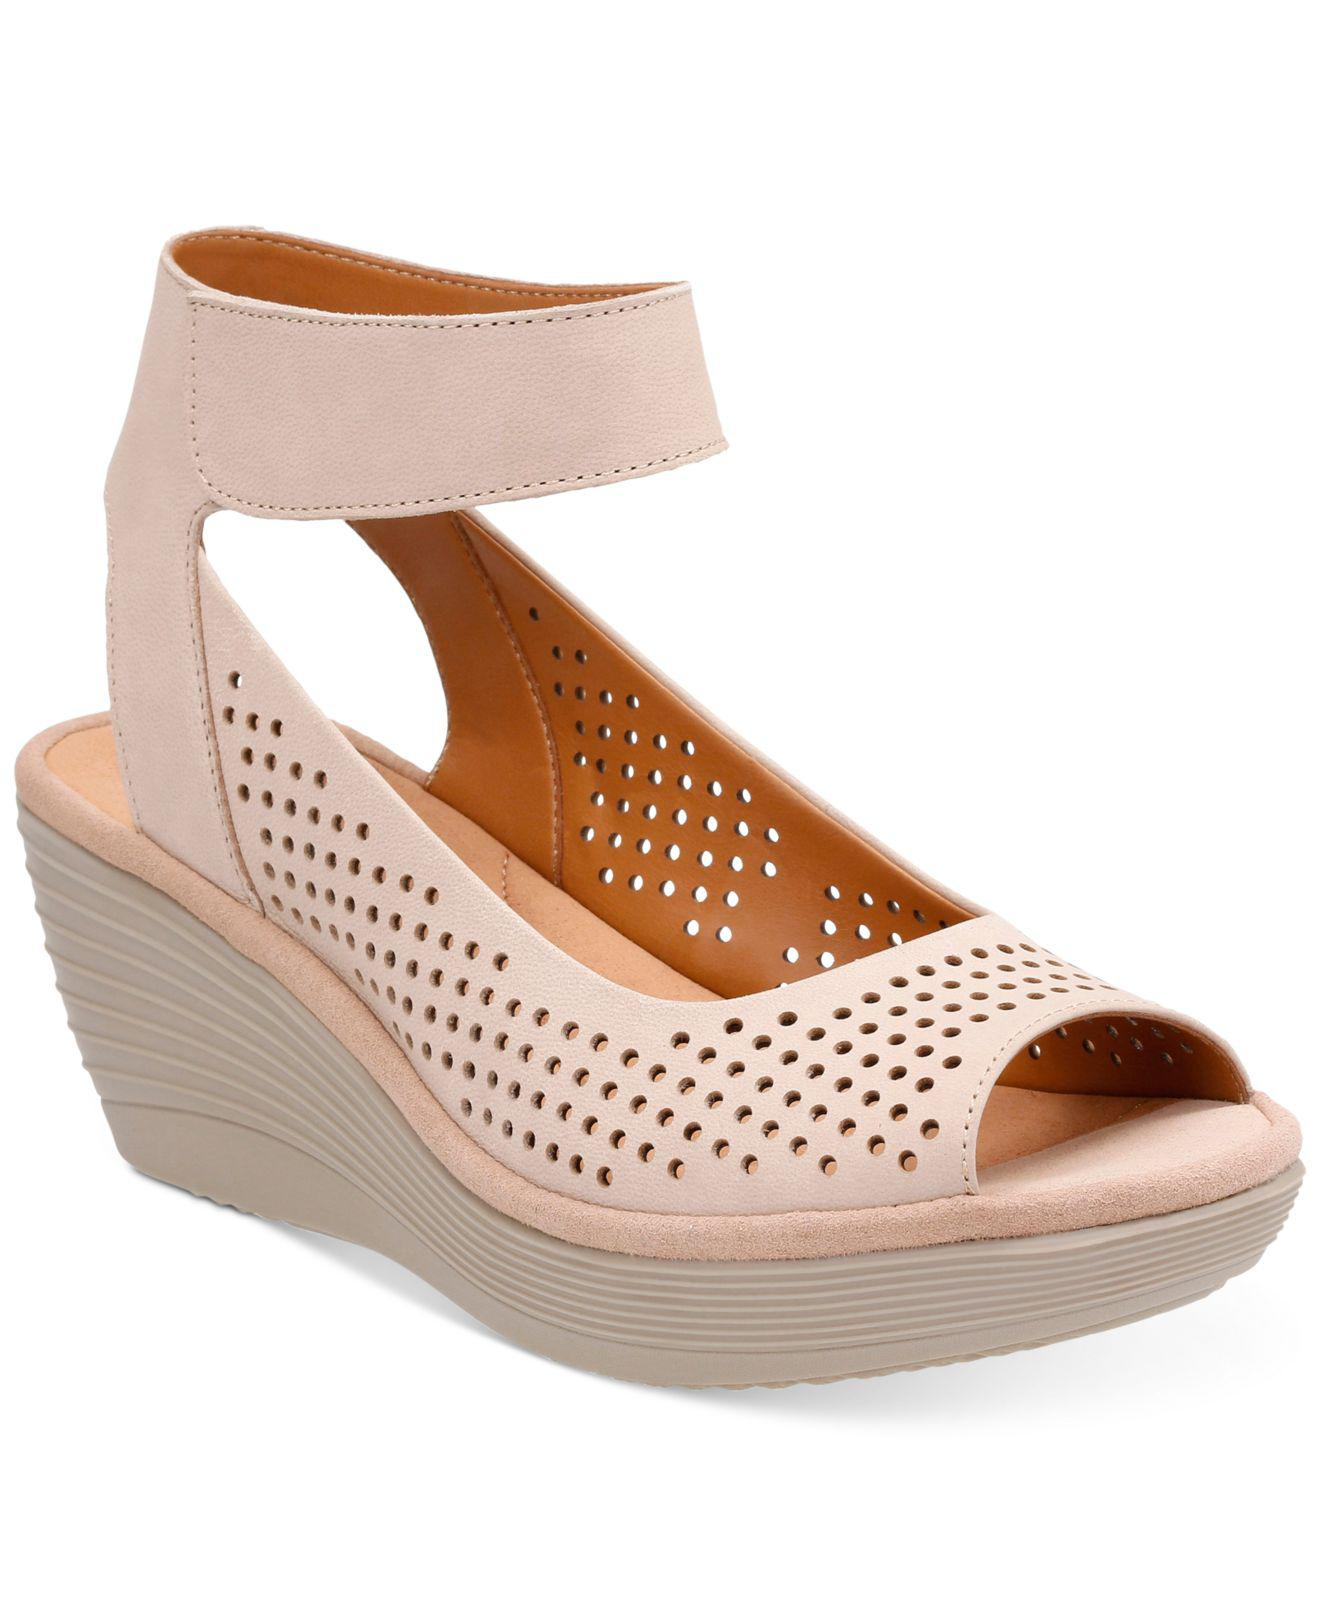 4f4d4725ed0 Clarks. Women s Reedly Salene Wedge Sandals